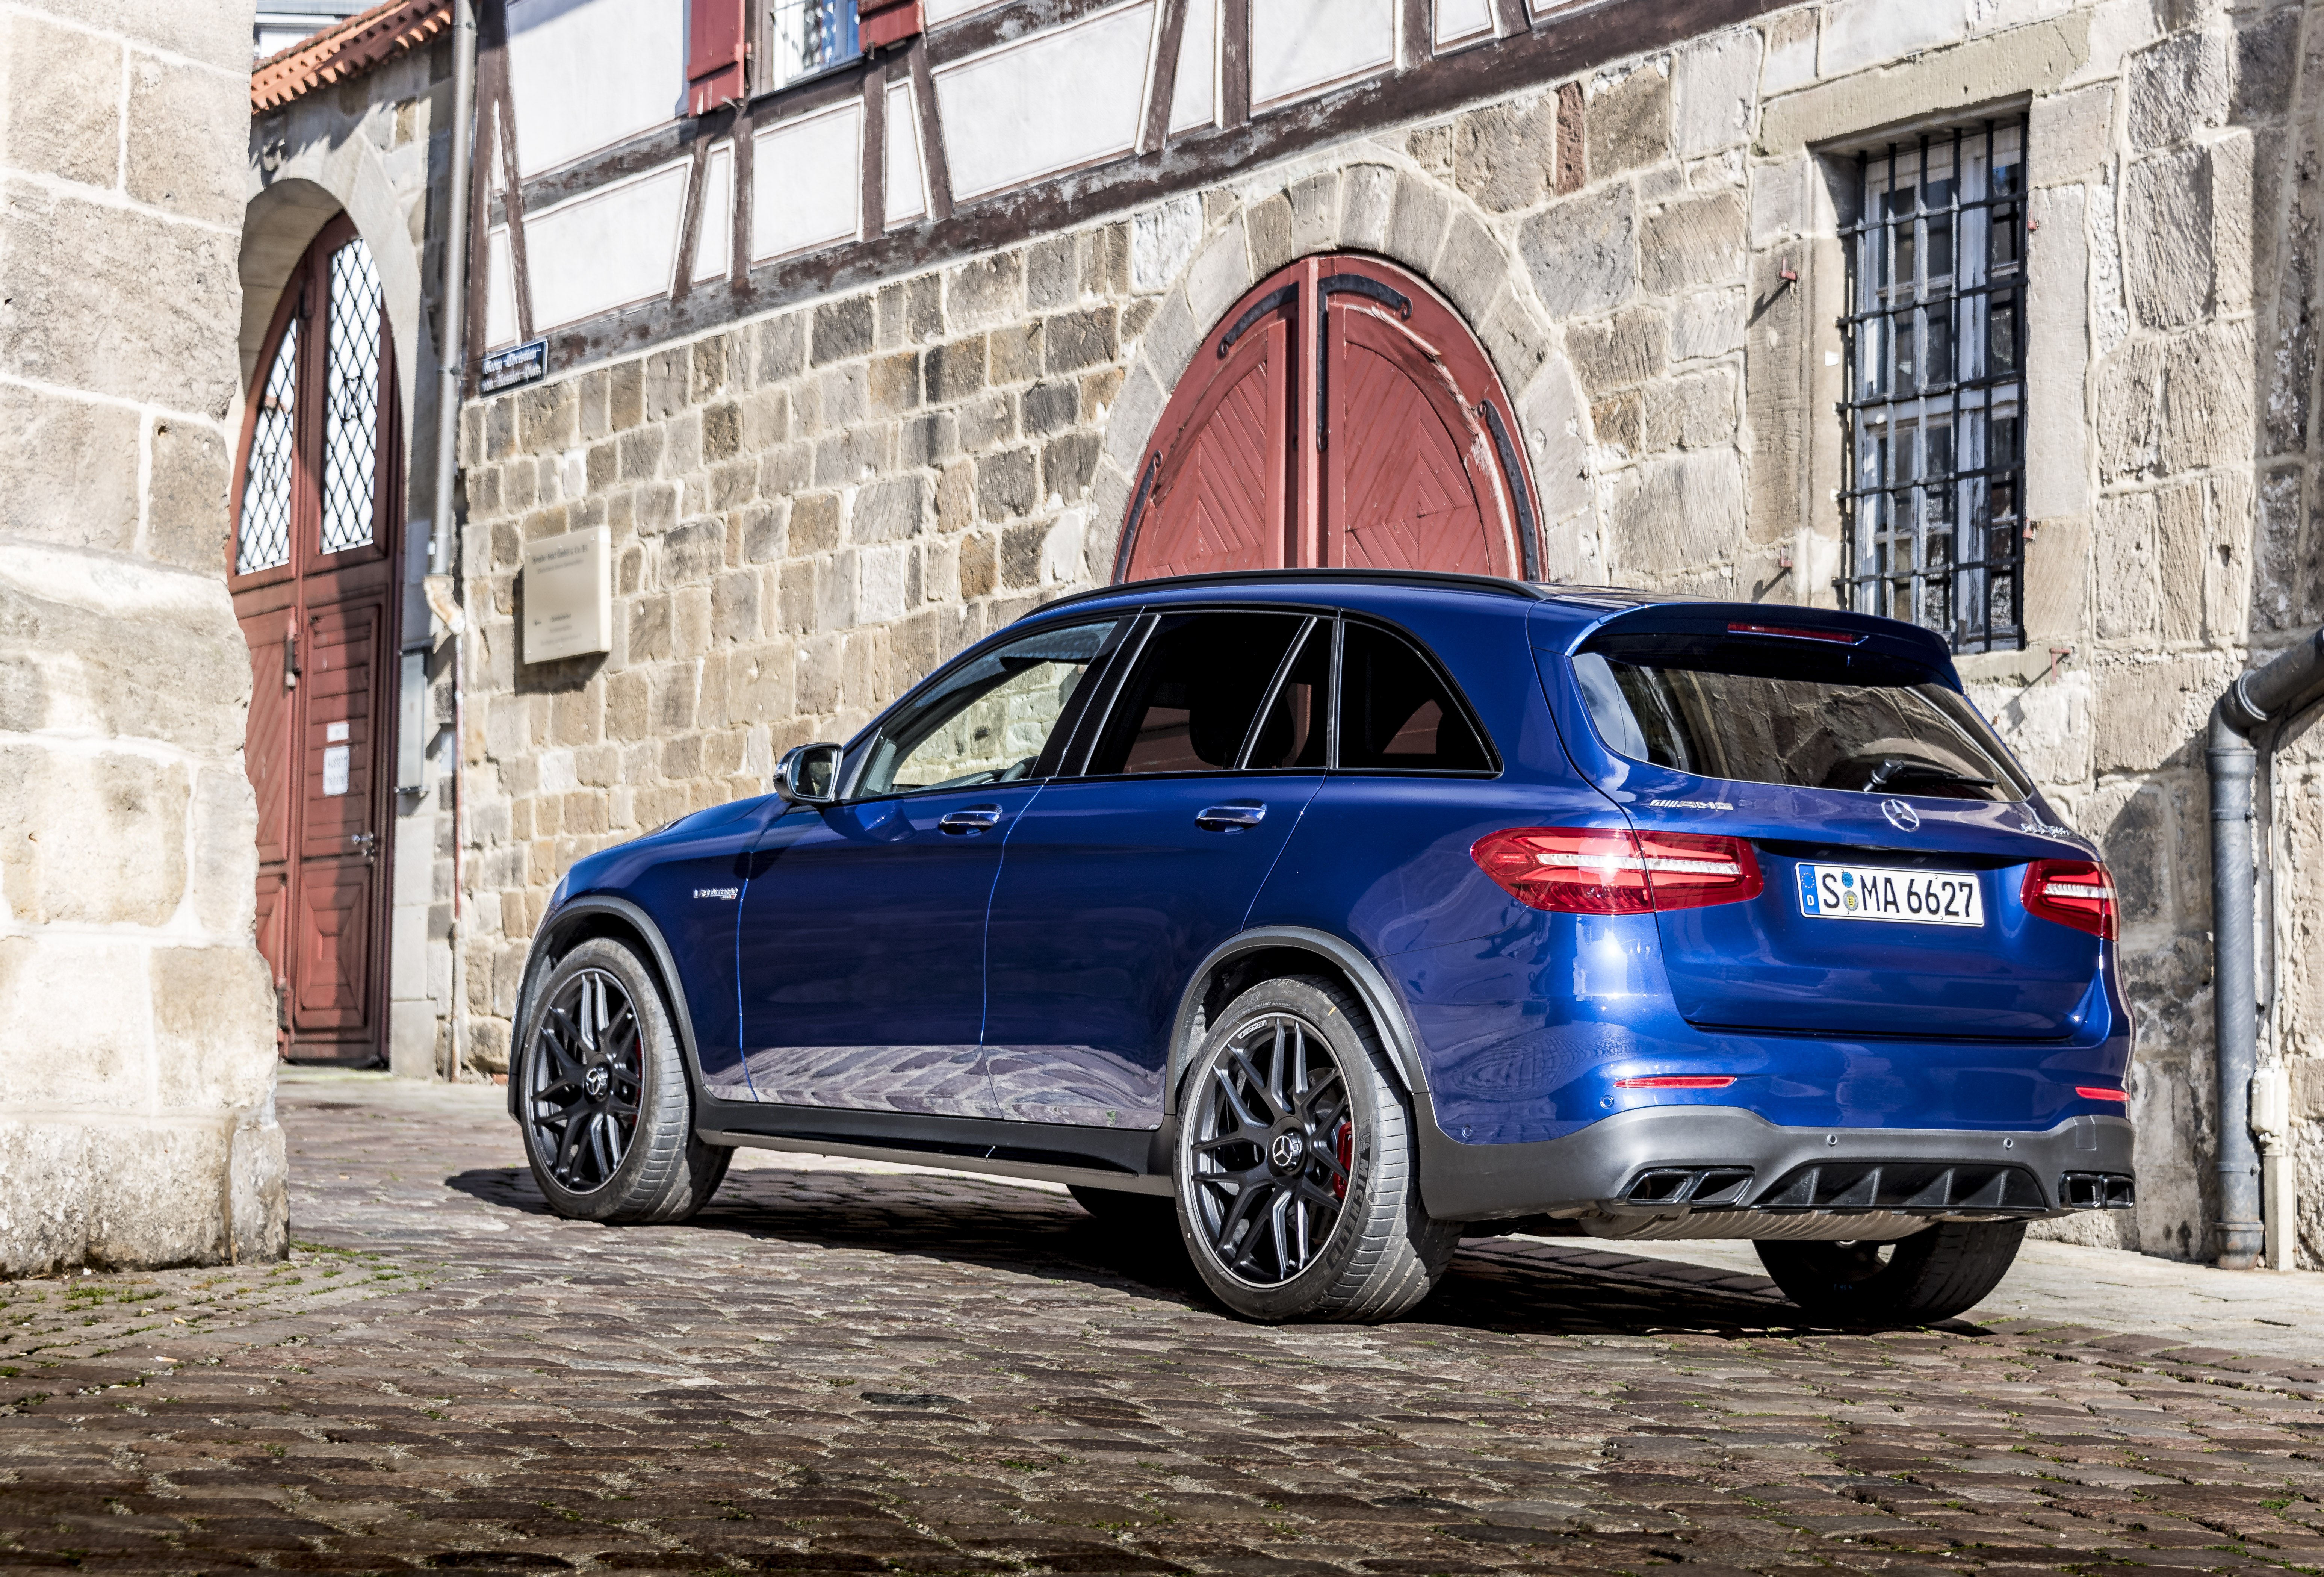 2018 mercedes-amg glc 63 s coupe review - gtspirit